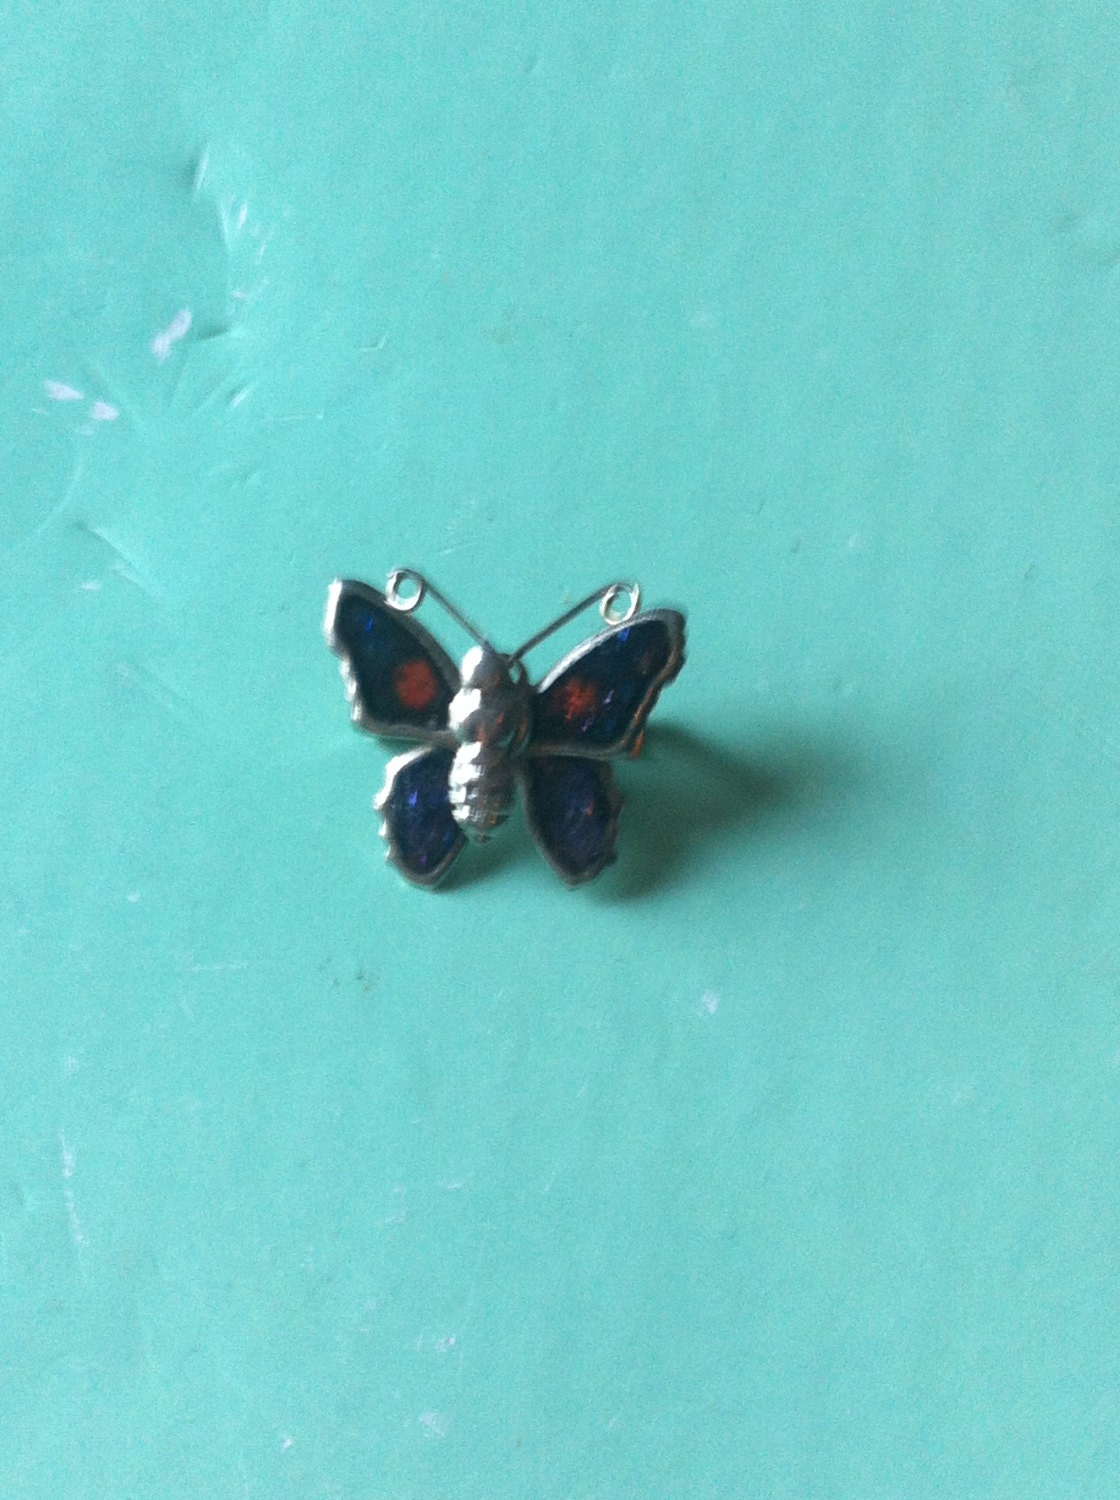 Beautifulb tiny 70s butterfly enamel antique vintage pin brooch retro jewellery jewelry